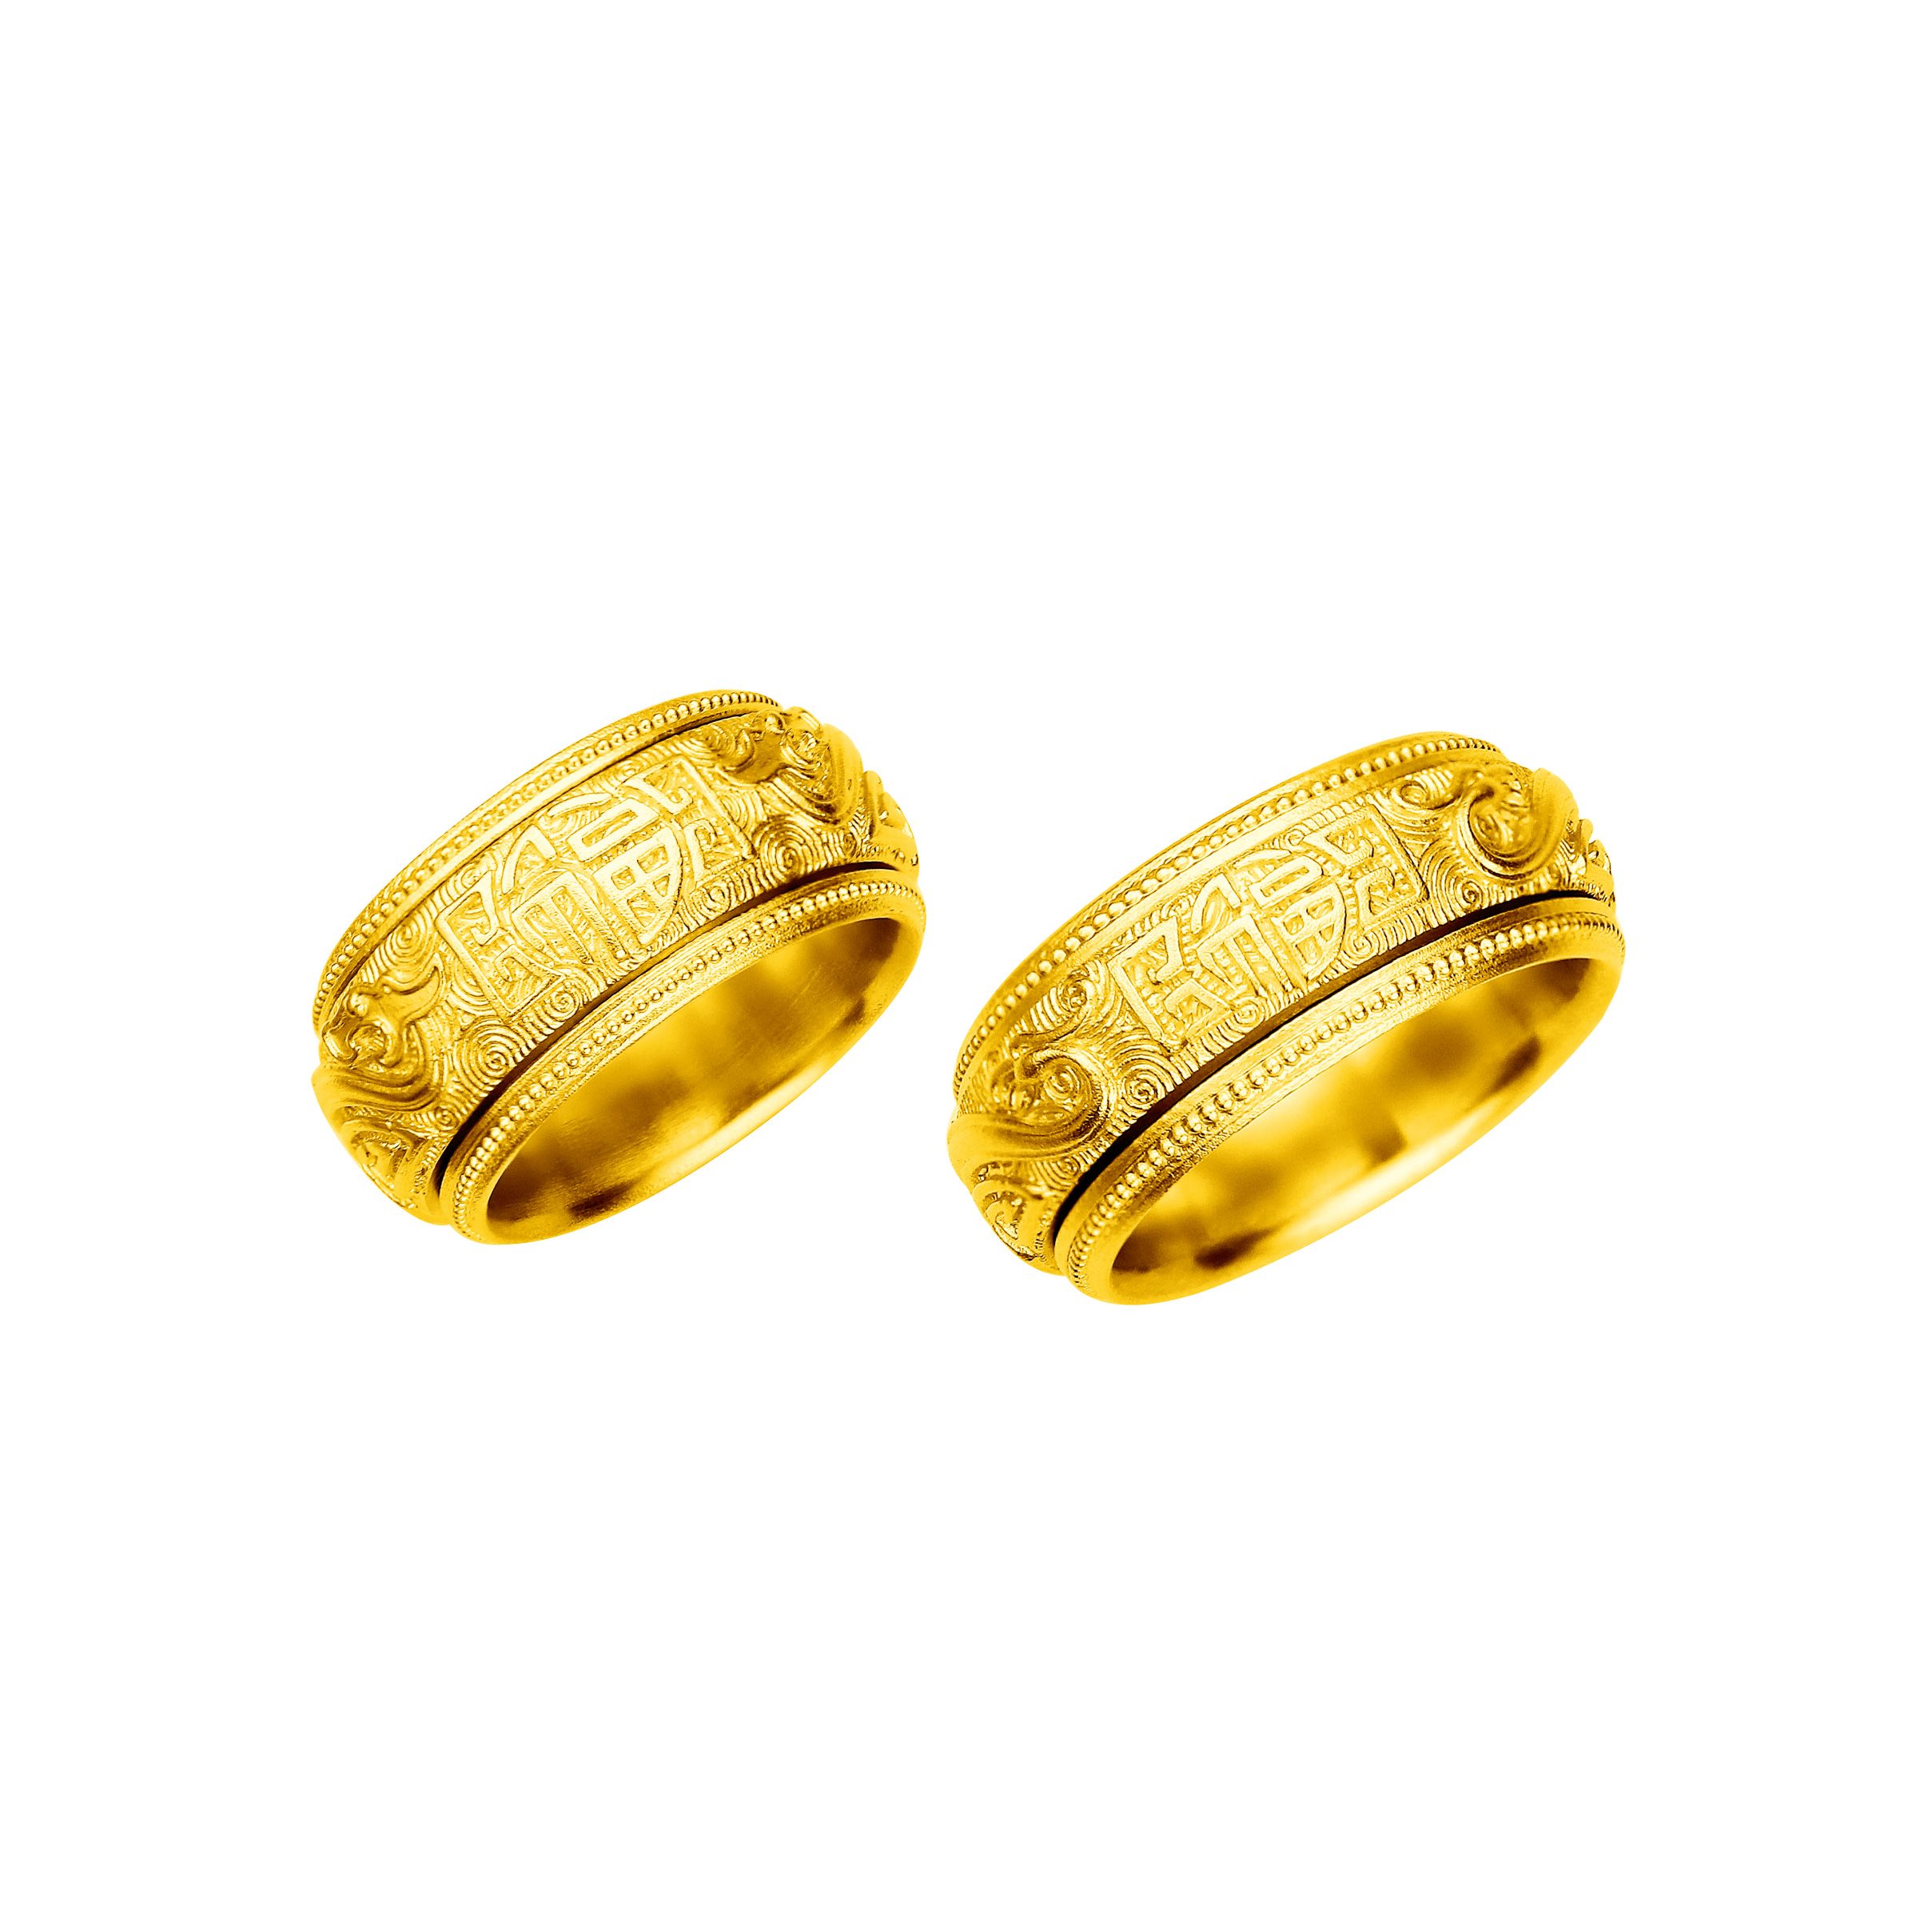 Antique Gold「慶福」Gold Rings